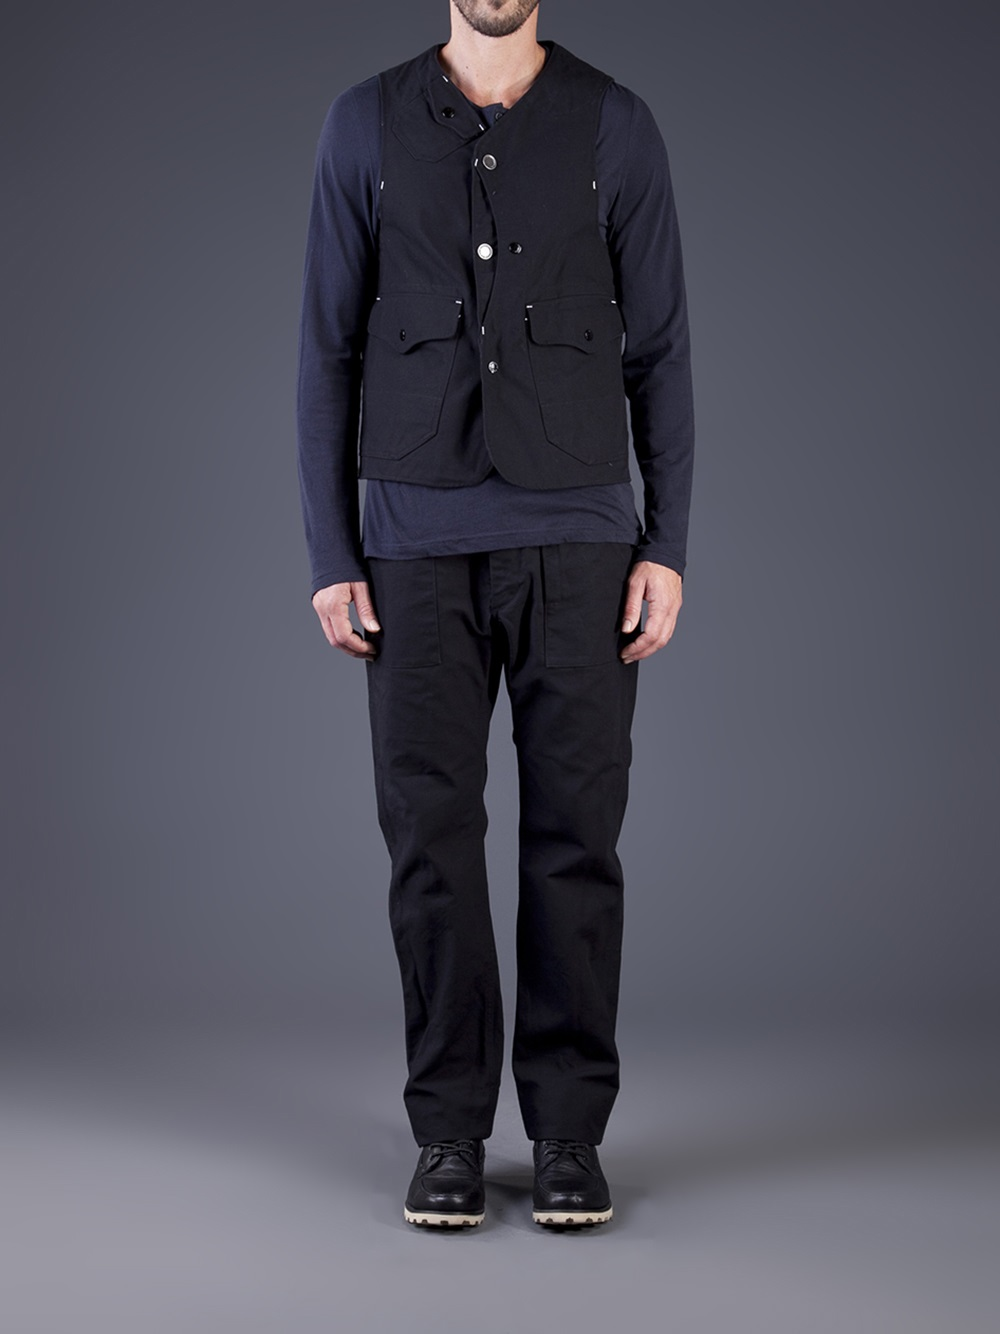 Engineered Garments Upland Vest In Black For Men Lyst